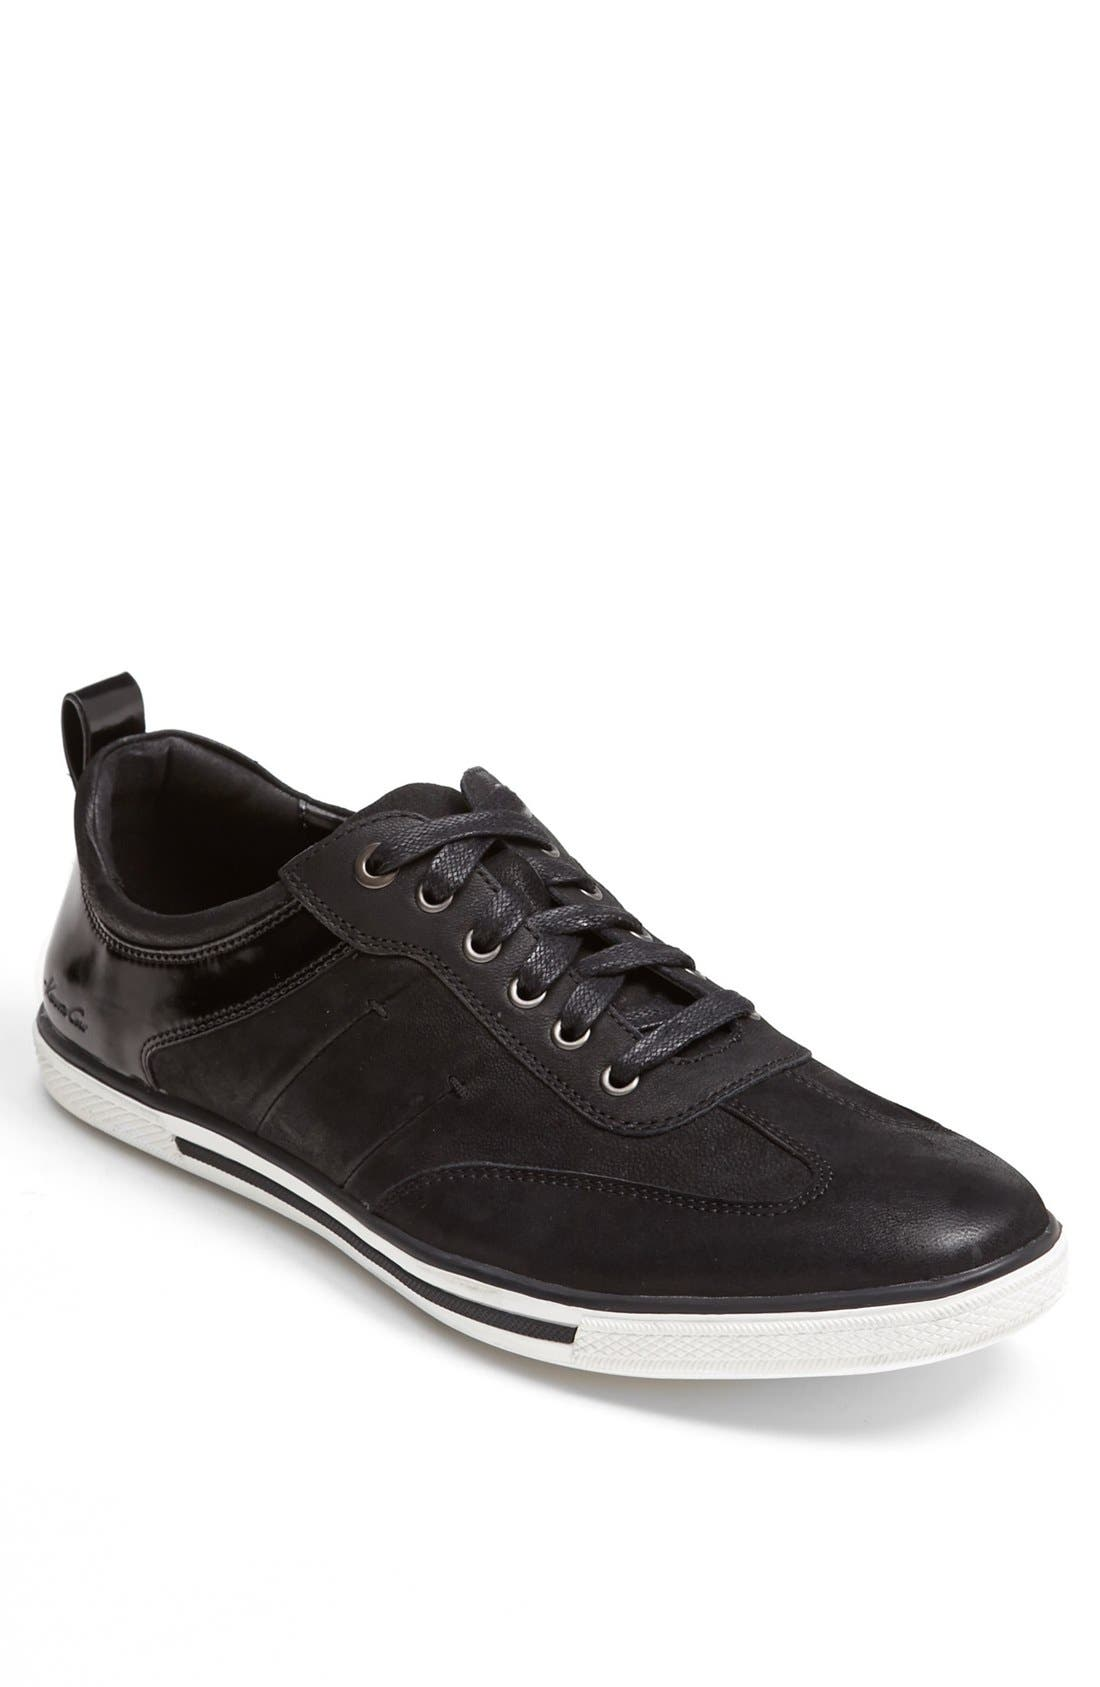 Main Image - Kenneth Cole New York 'Down the Hatch' Sneaker